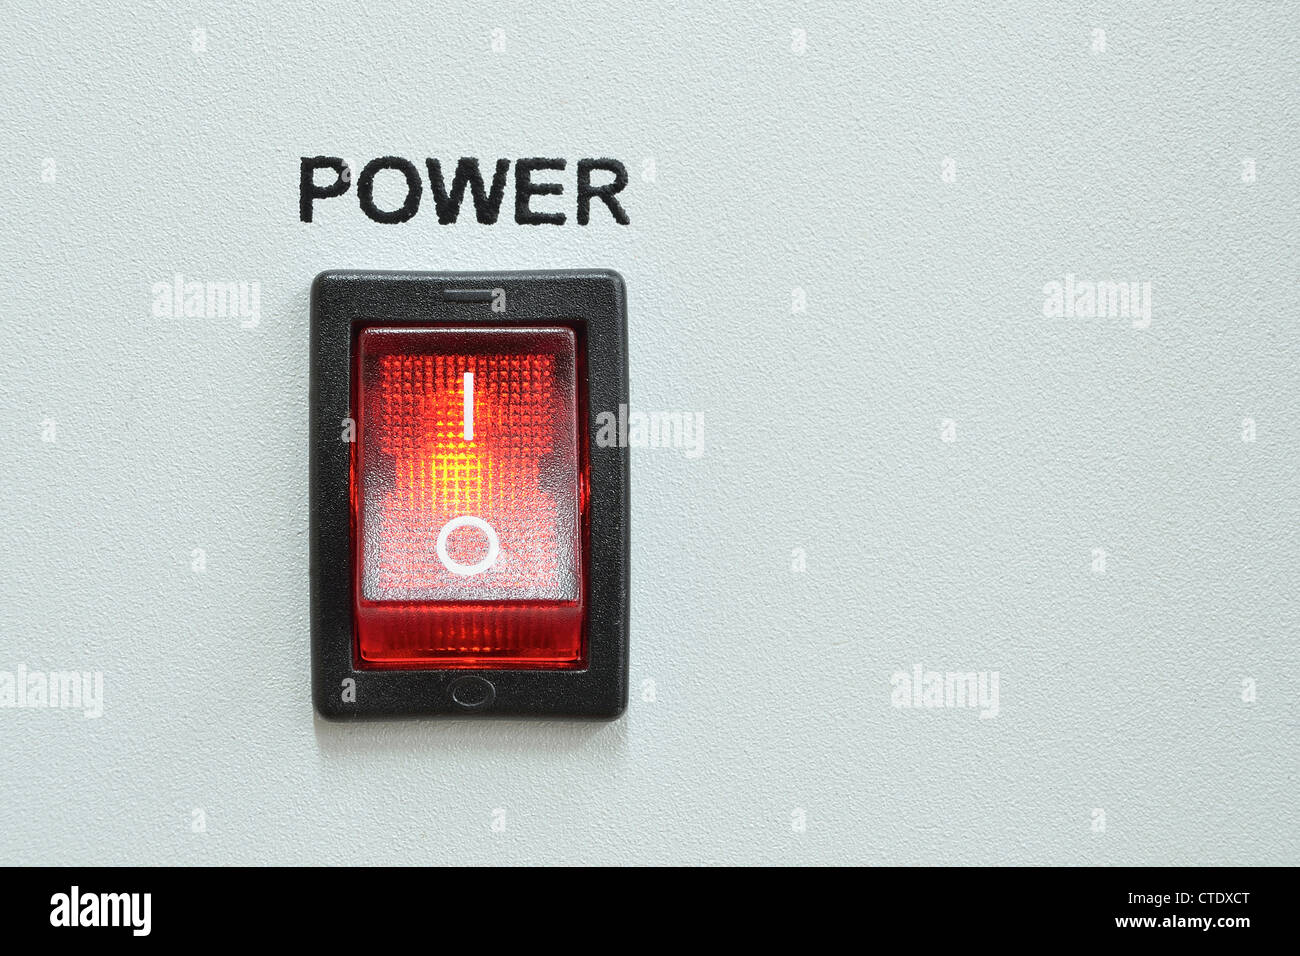 front device panel with detailed red power switch button - Stock Image